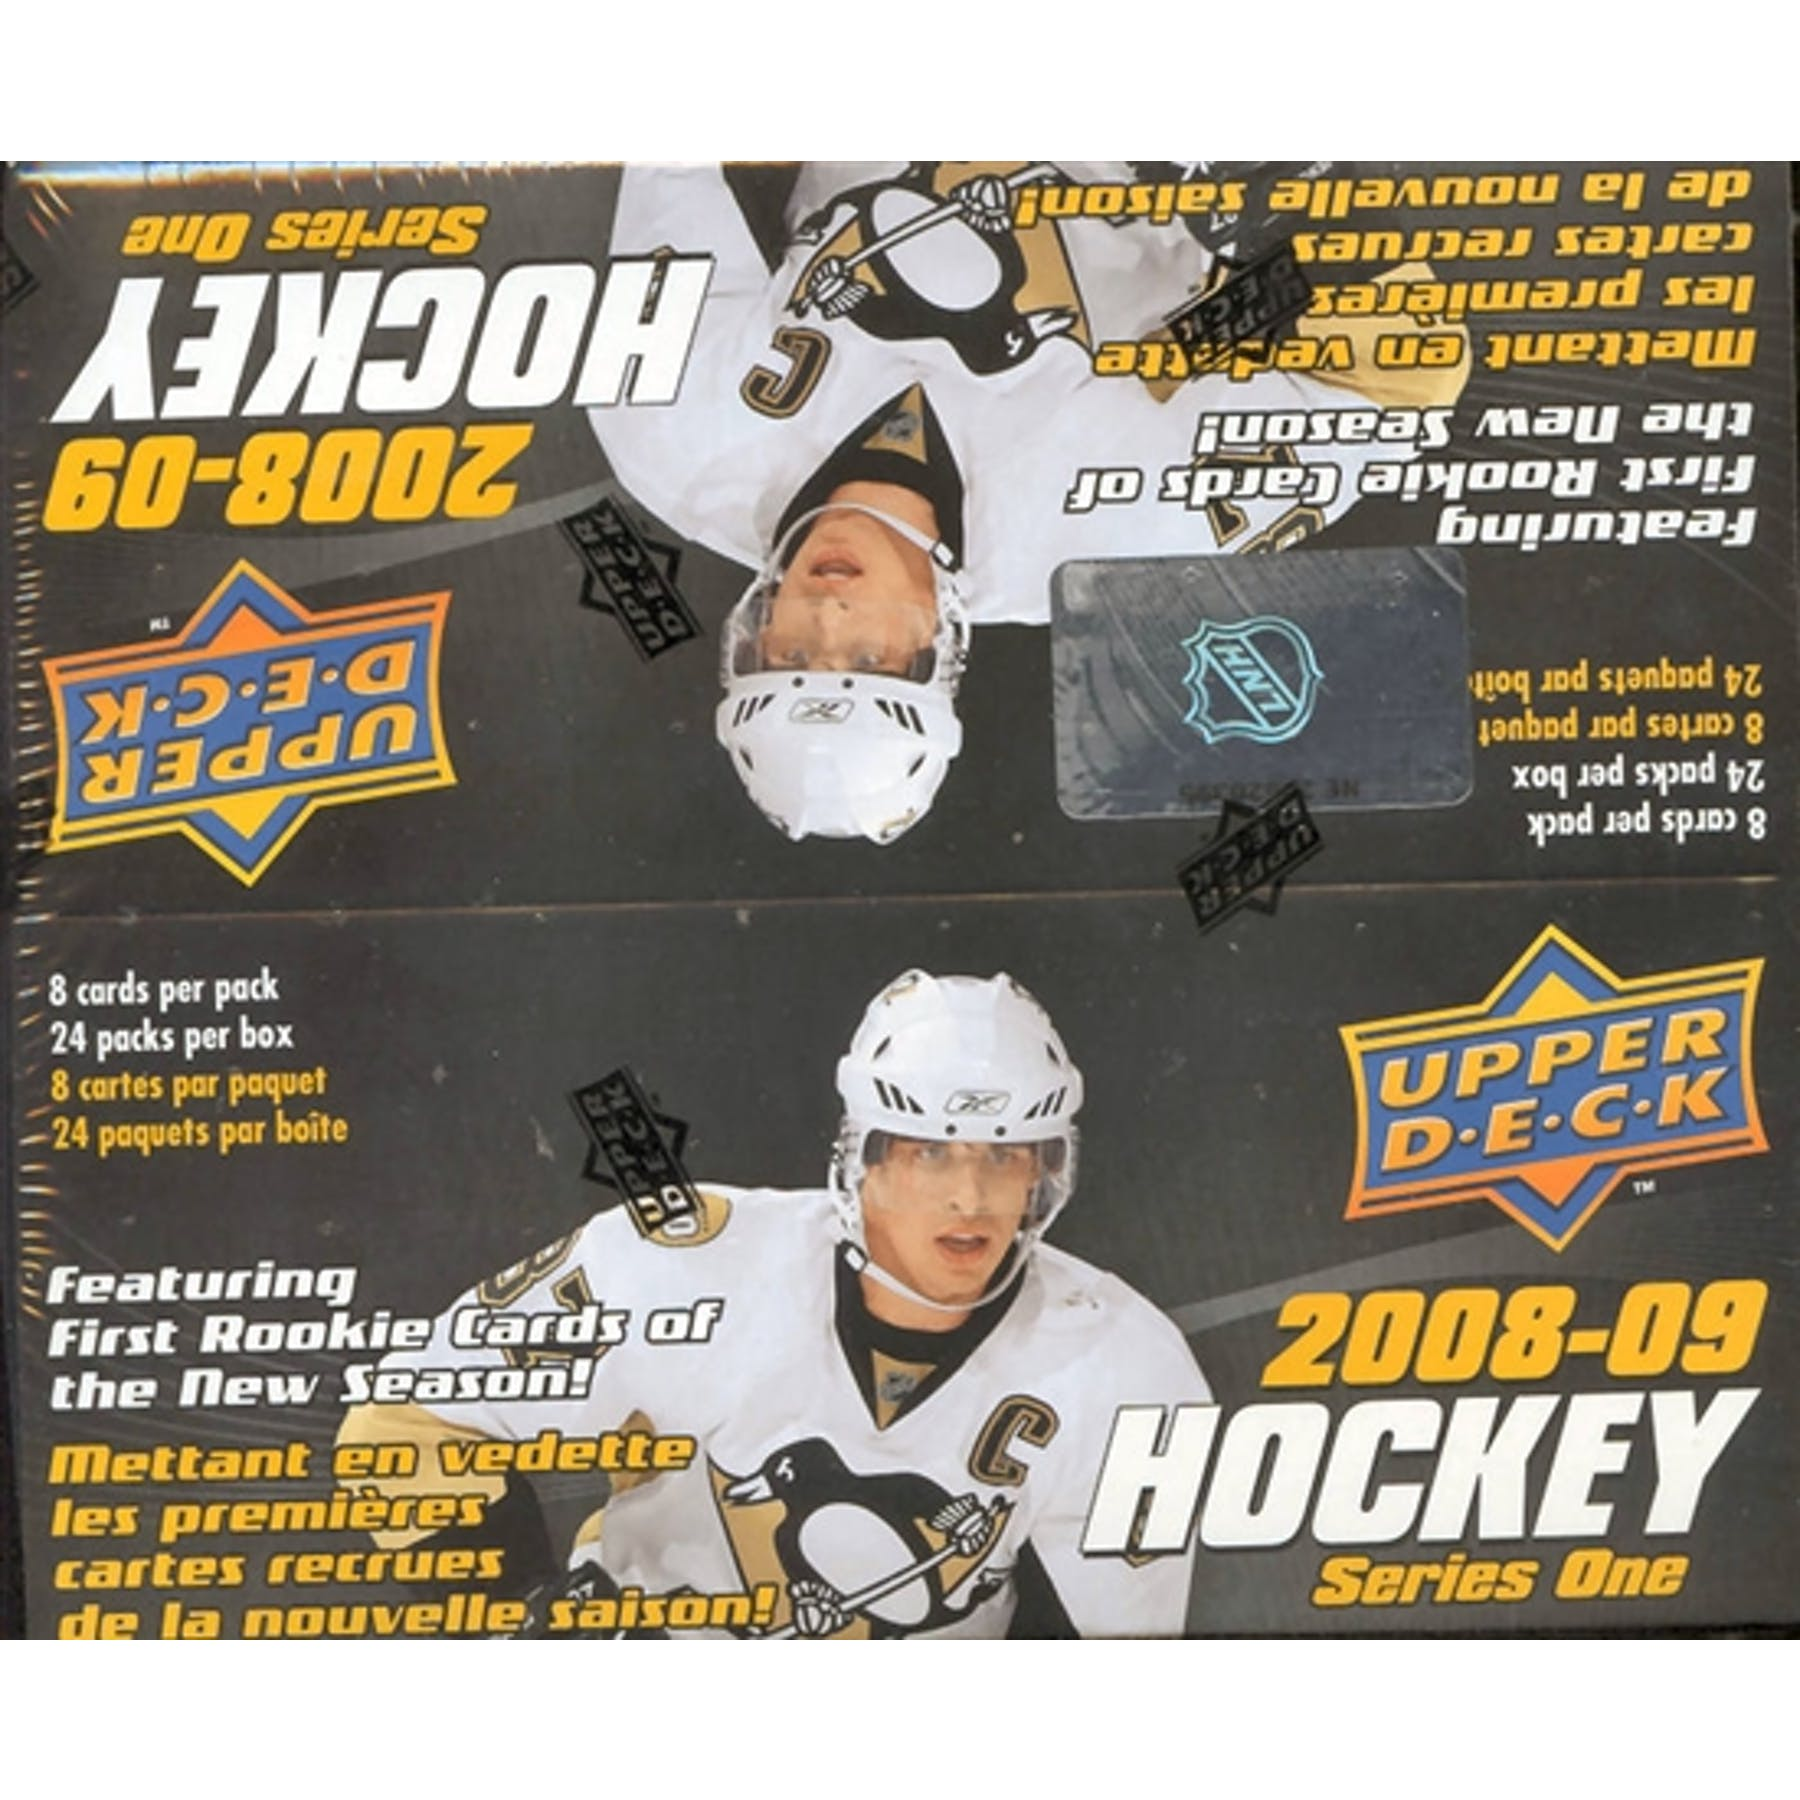 2008-09 Upper Deck Hockey Series 1 Retail Box | Eastridge Sports Cards